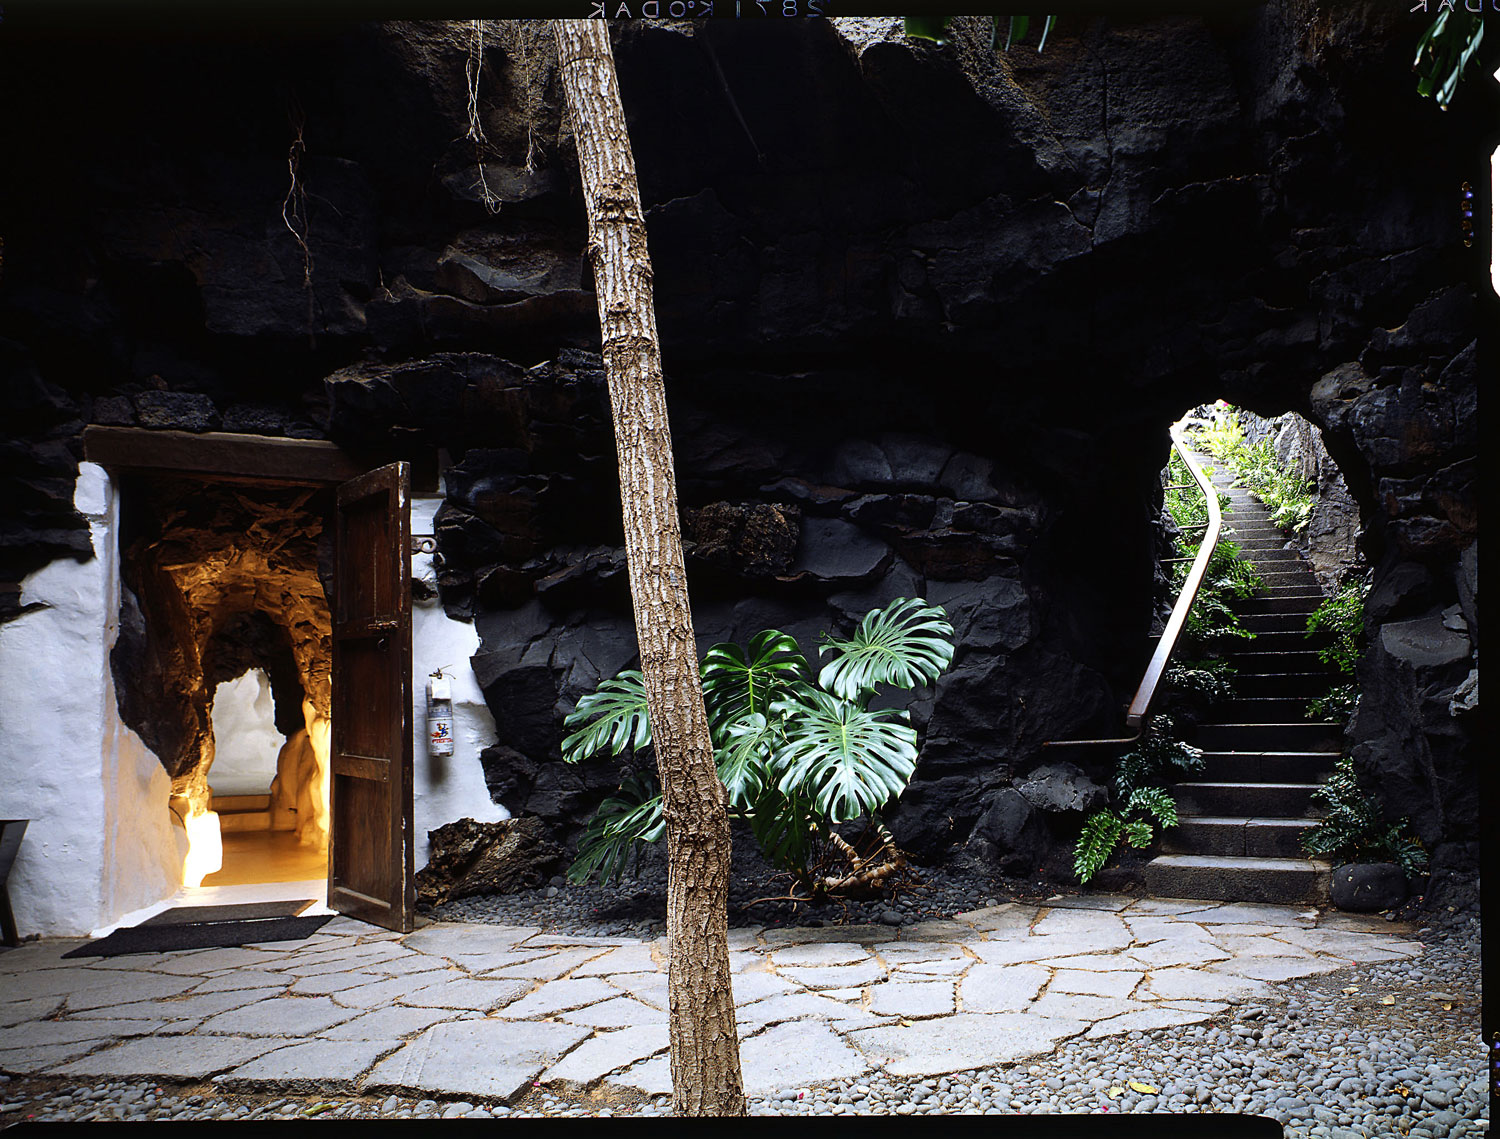 Cesar Manrique Foundation at Taro de Tahiche. Photo by Alastair Philip Wiper | Yellowtrace